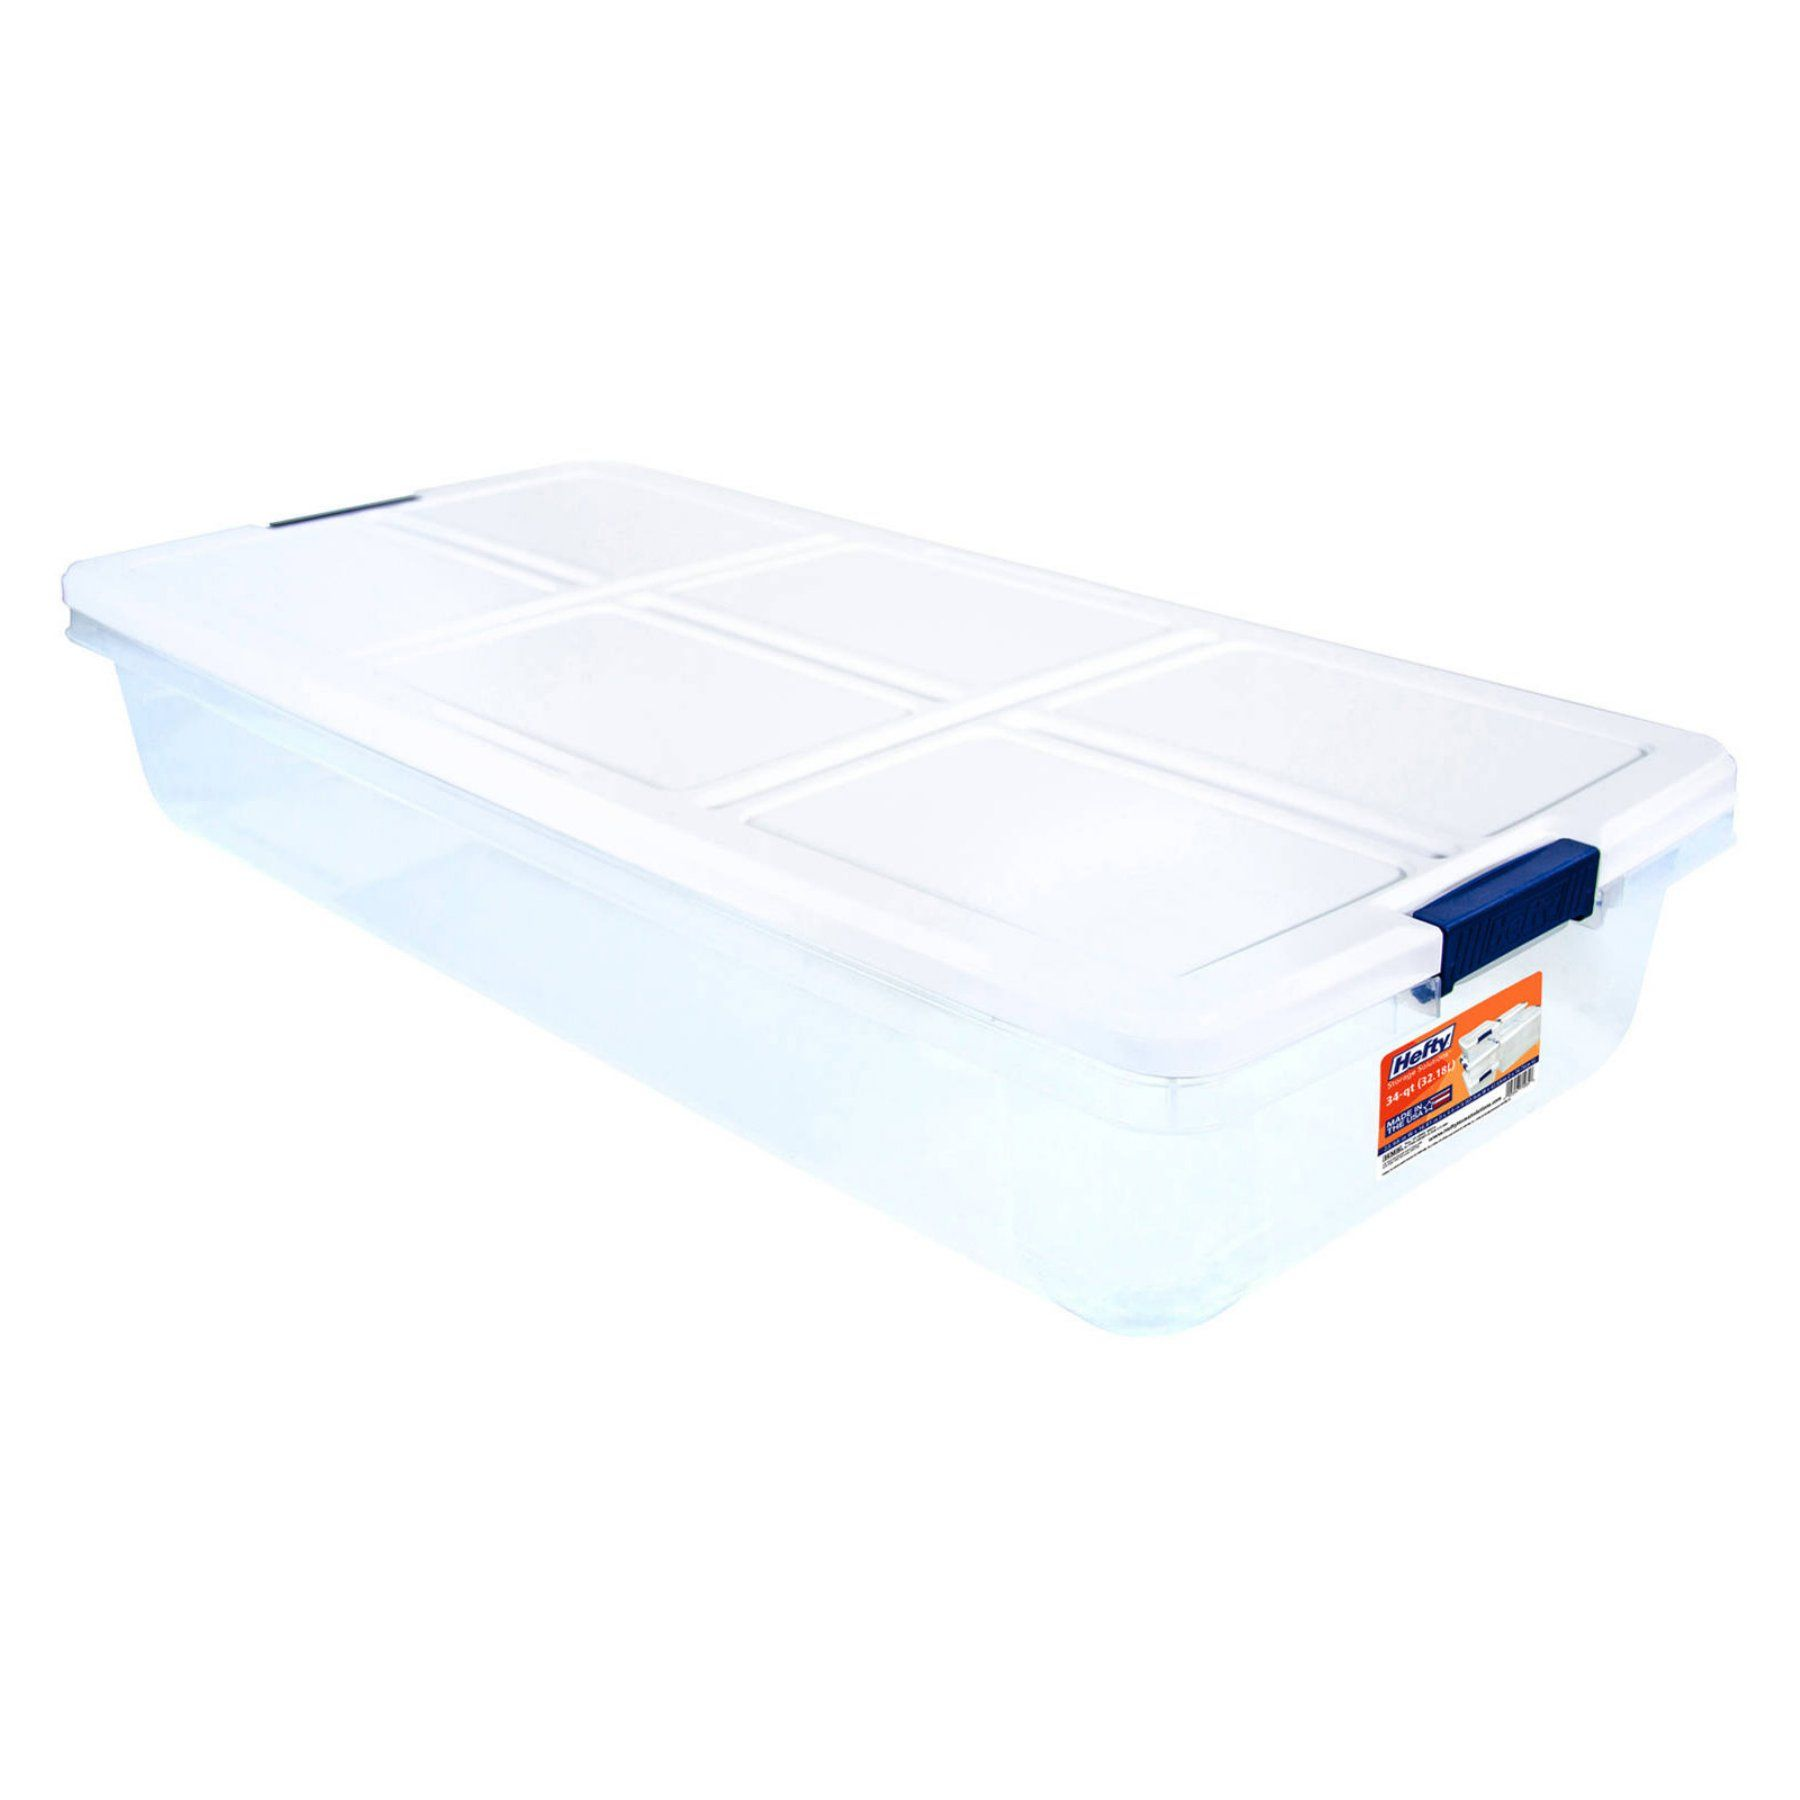 Hefty Modular Clear 52 Qt Storage Bin Ceeea6bed7bf451aa17da74e66c7ef5f Storage Bins Clear Storage Bins Under Bed Storage Containers